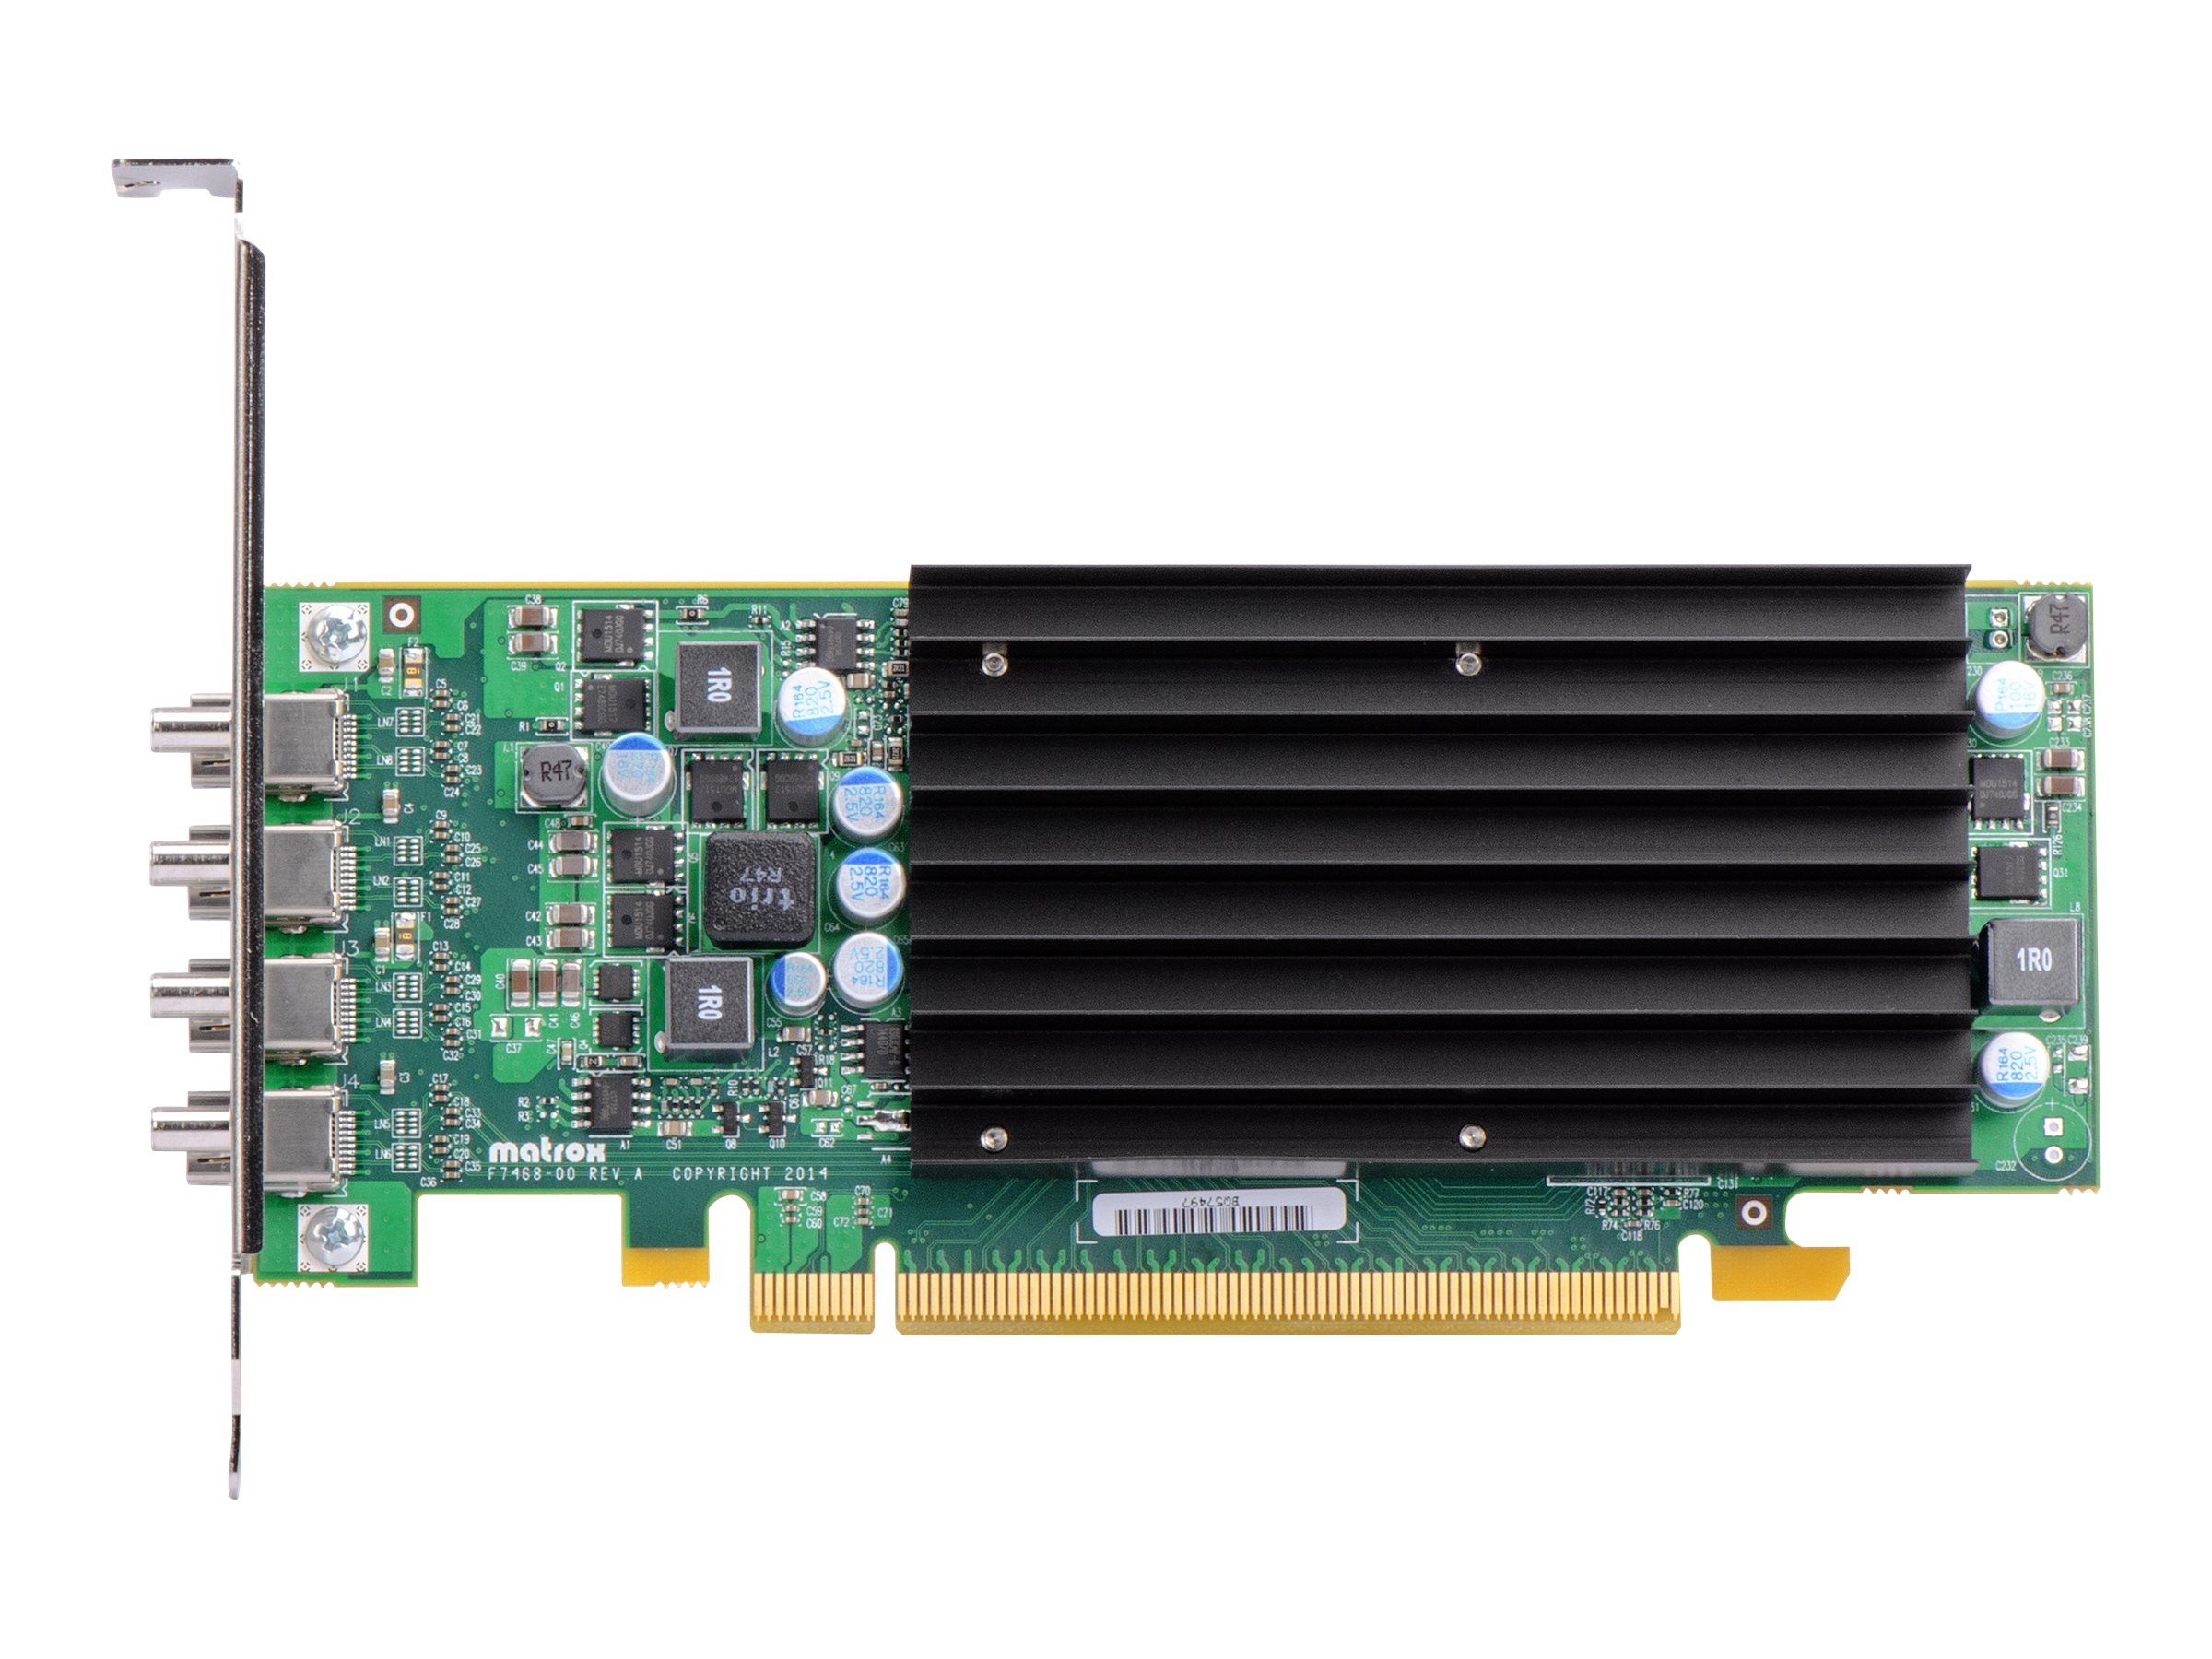 Matrox C420 PCIe 3.0 x16 Low-Profile Graphics Card, 2GB GDDR5, C420-E2GBLAF, 17822326, Graphics/Video Accelerators